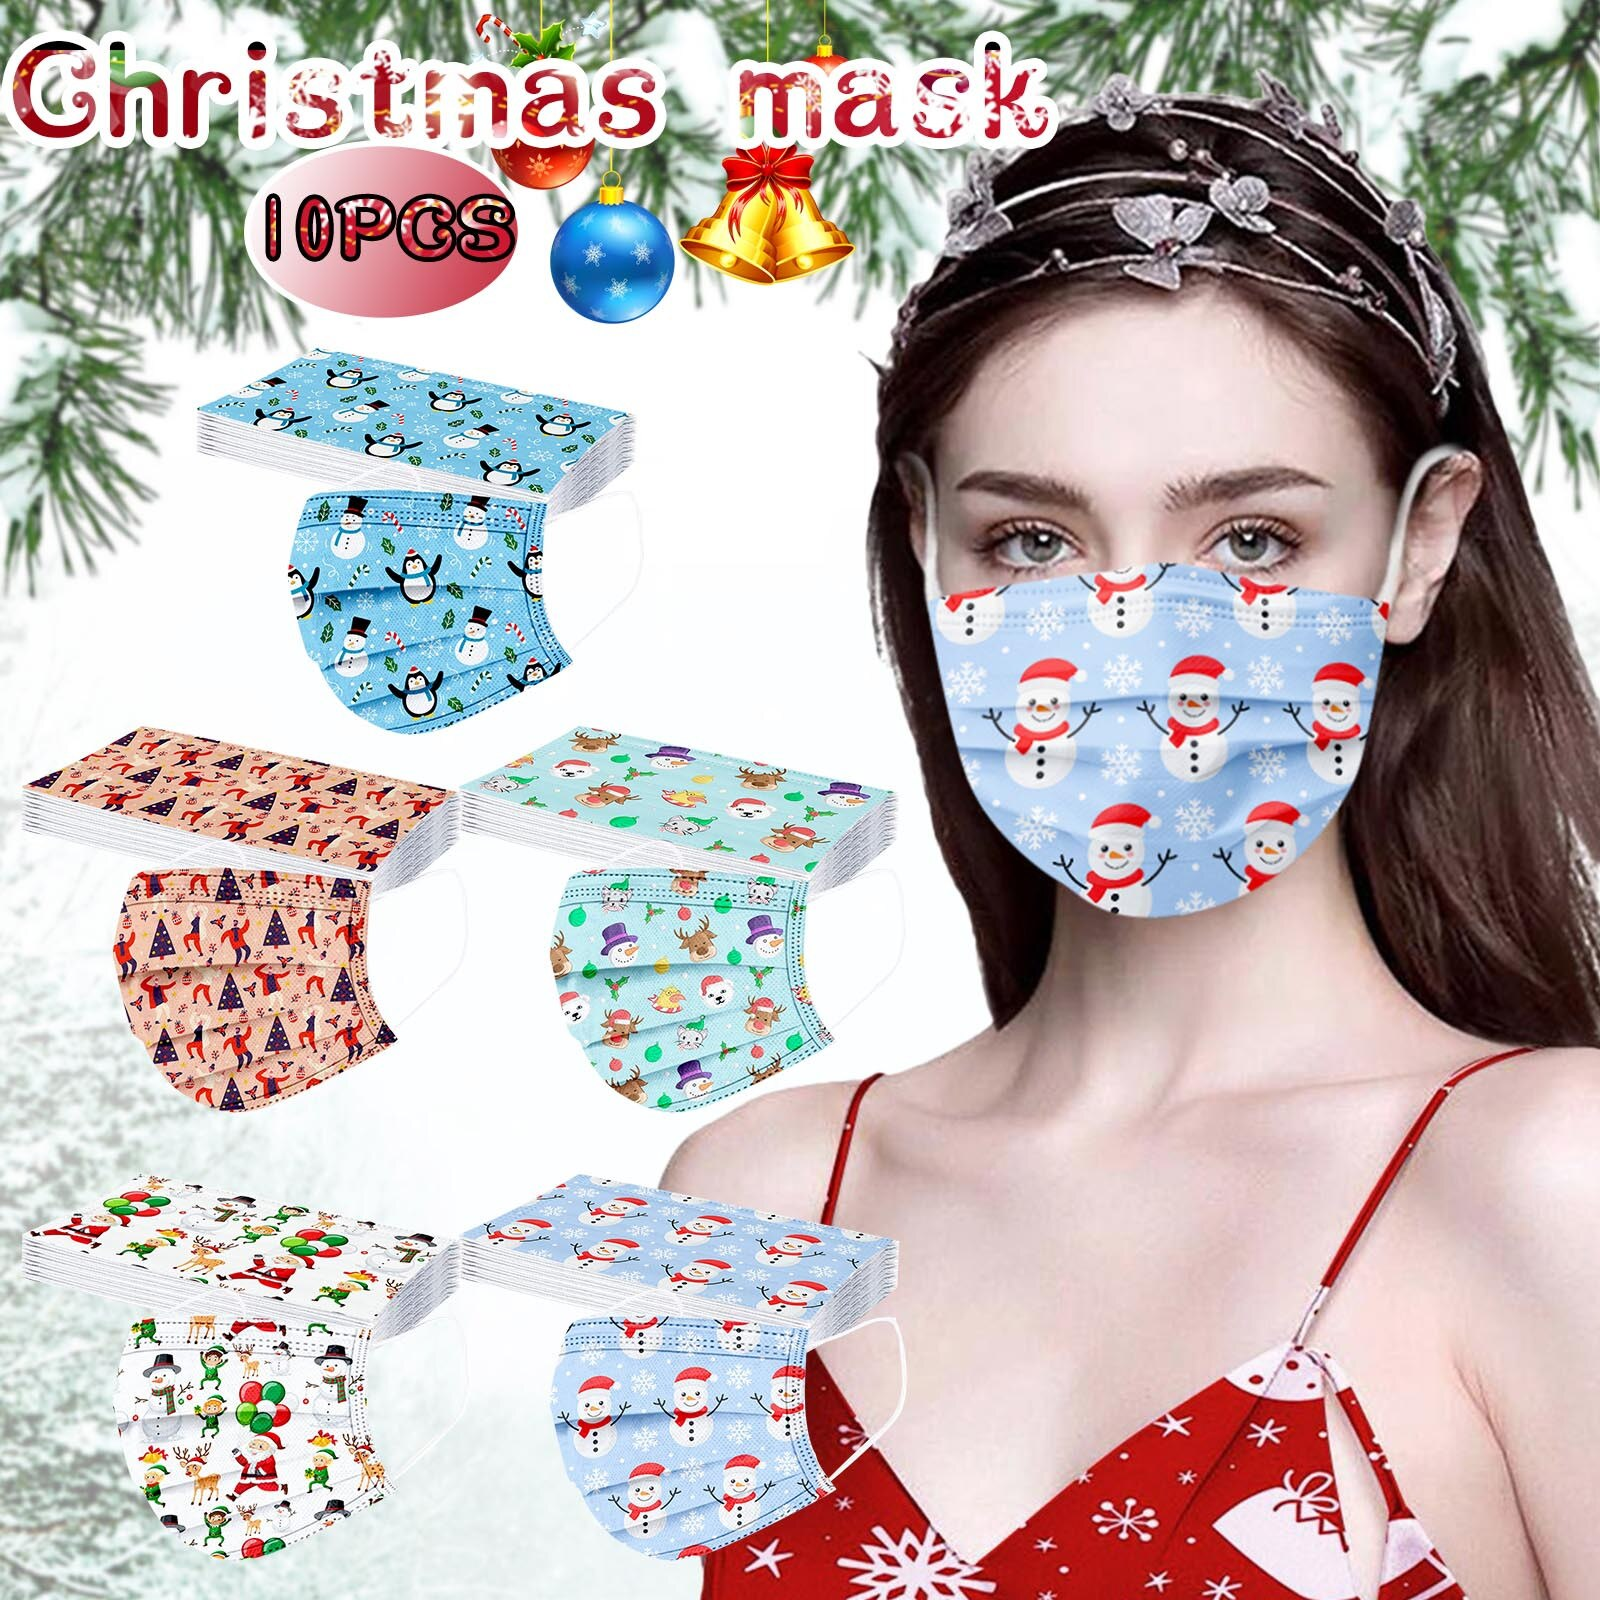 10pc Christmas face Mask Adults Unisex Disposable three-layer Nonwove Mascarillas High Quality Masks elastic Earloop Mascherine